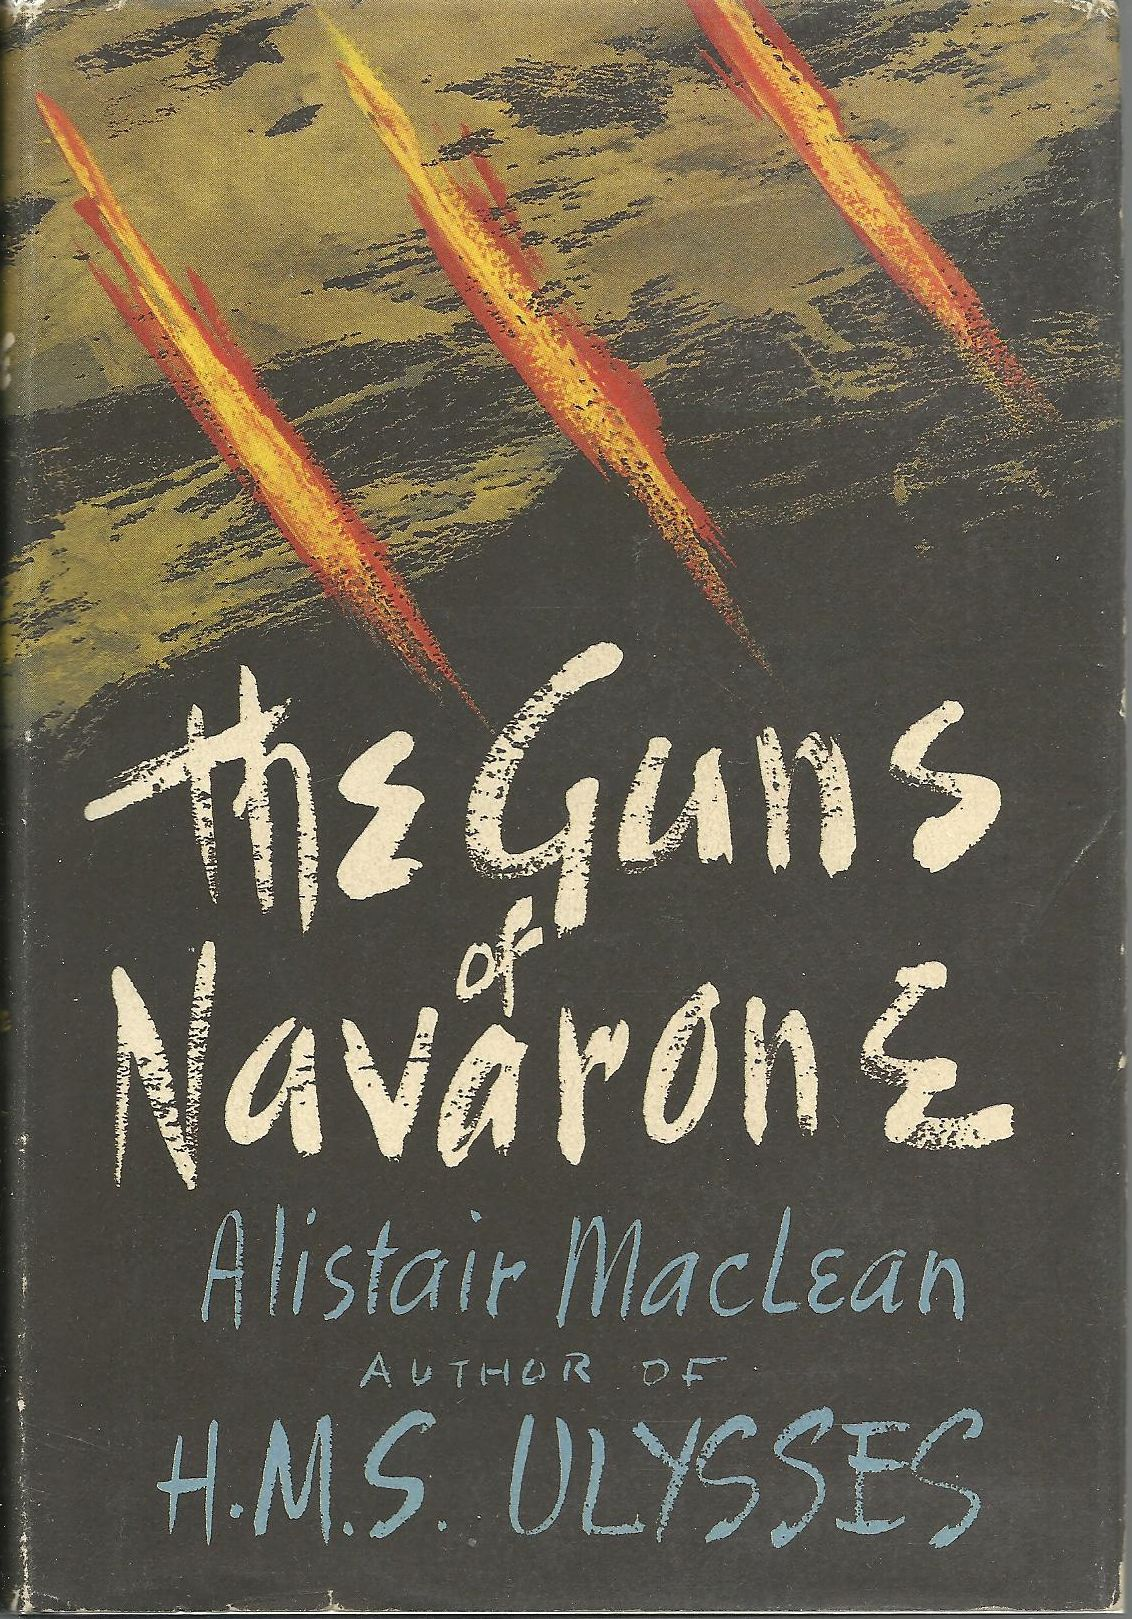 a book review of force 10 from navarone by alistair maclean If searched for the ebook force 10 from navarone (ulverscroft general fiction) by alistair maclean in pdf form, then you have come on to the right site.